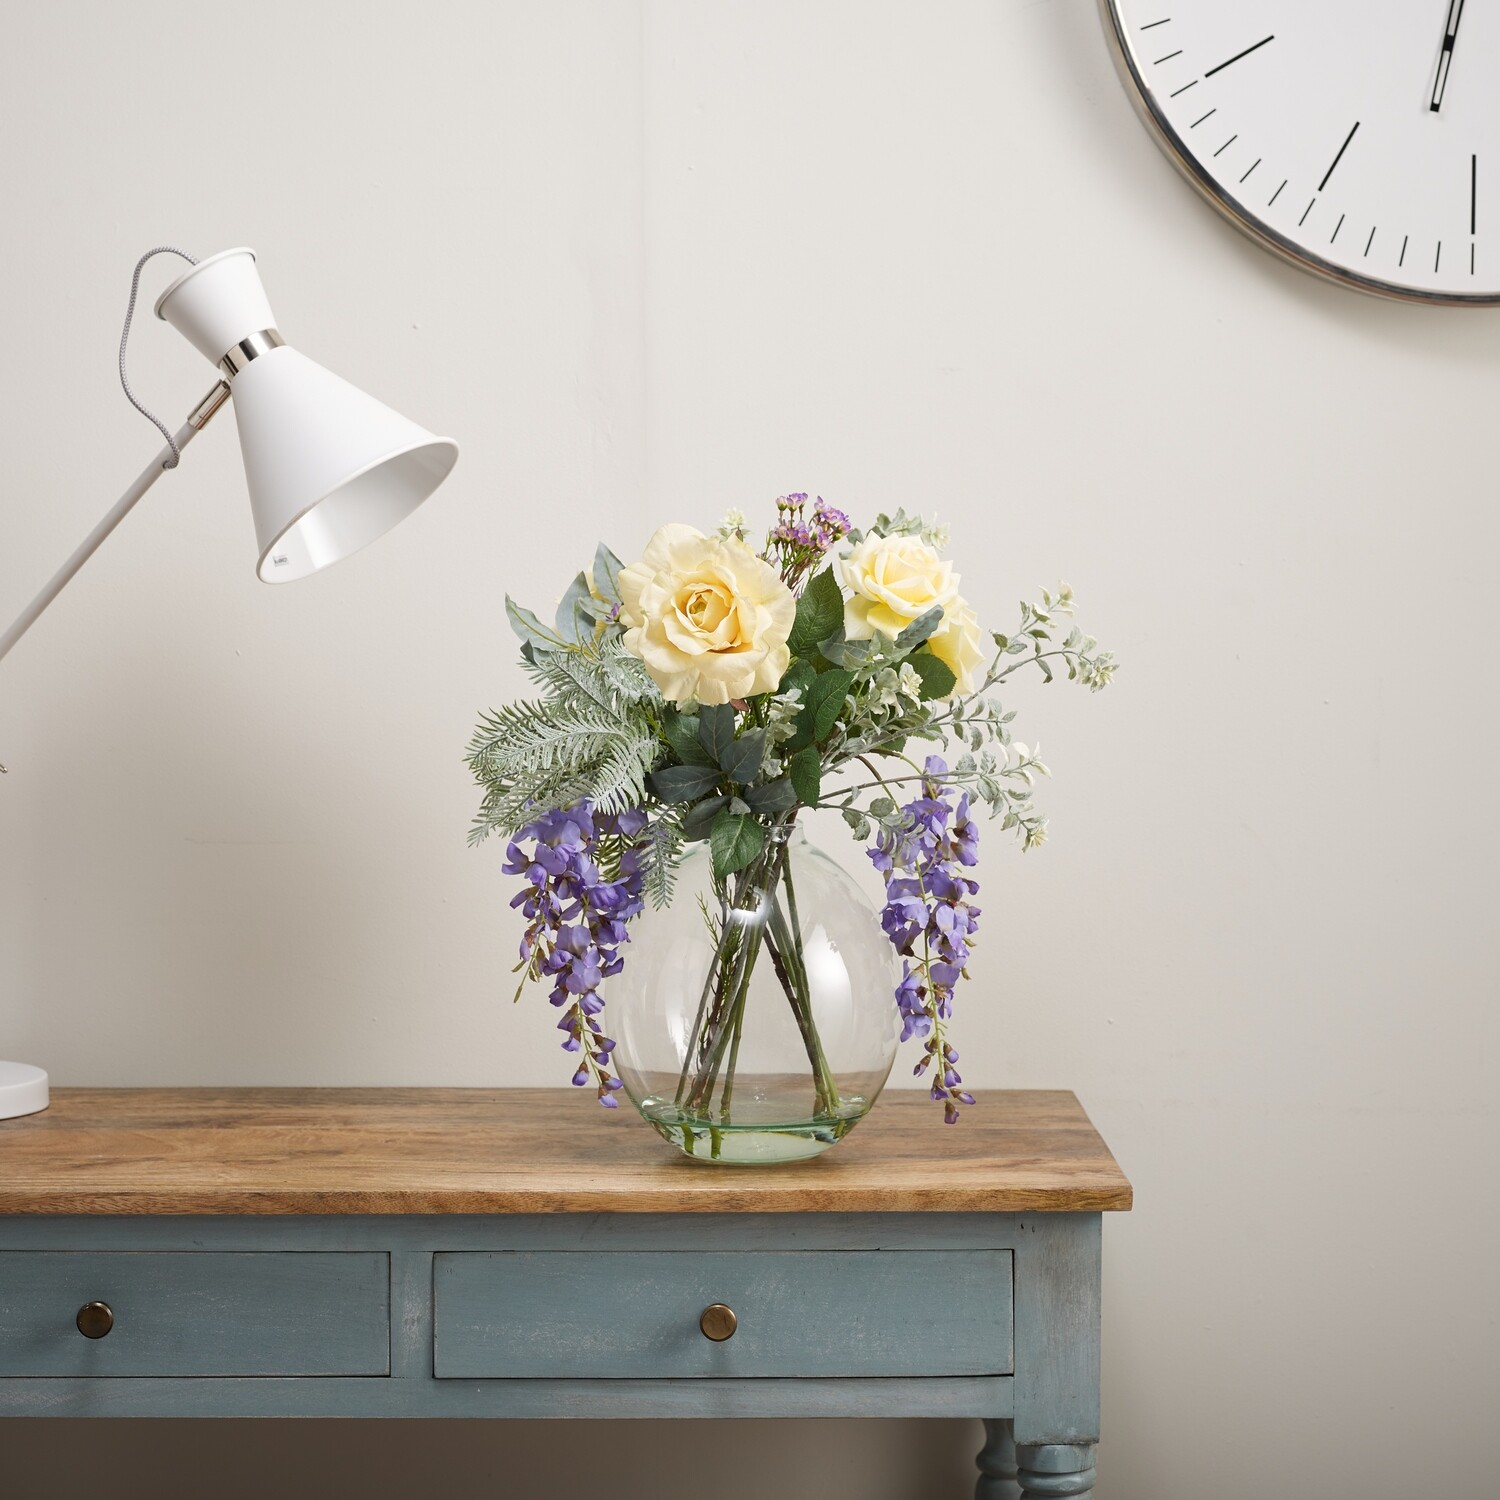 Rose, Wisteria and Foliage in Grand Oval Vase